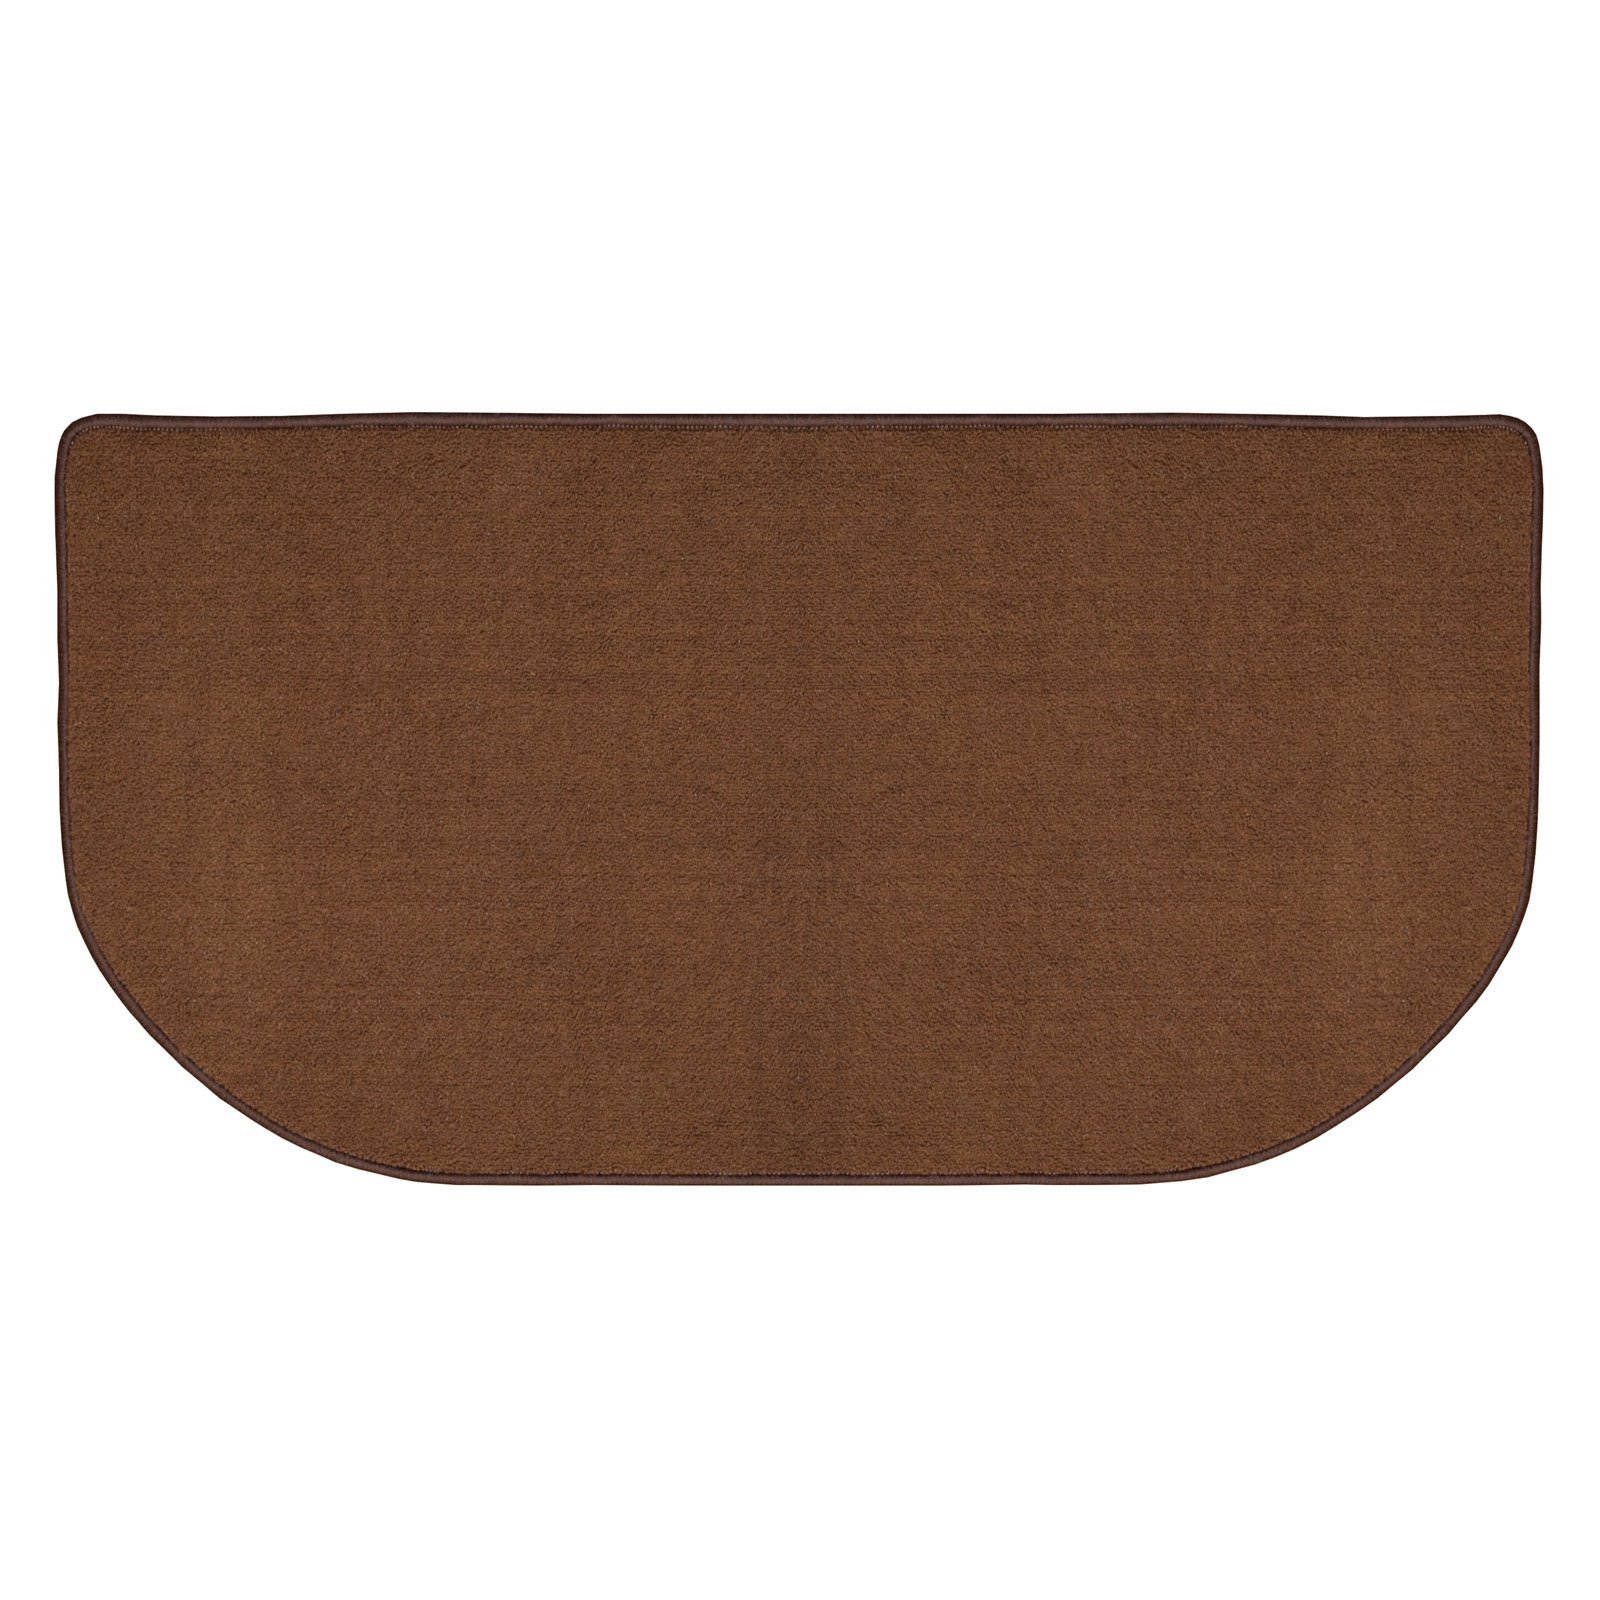 Uniflame Nylon Hearth Rug Solid by Blue Rhino Global Sourcing, LLC